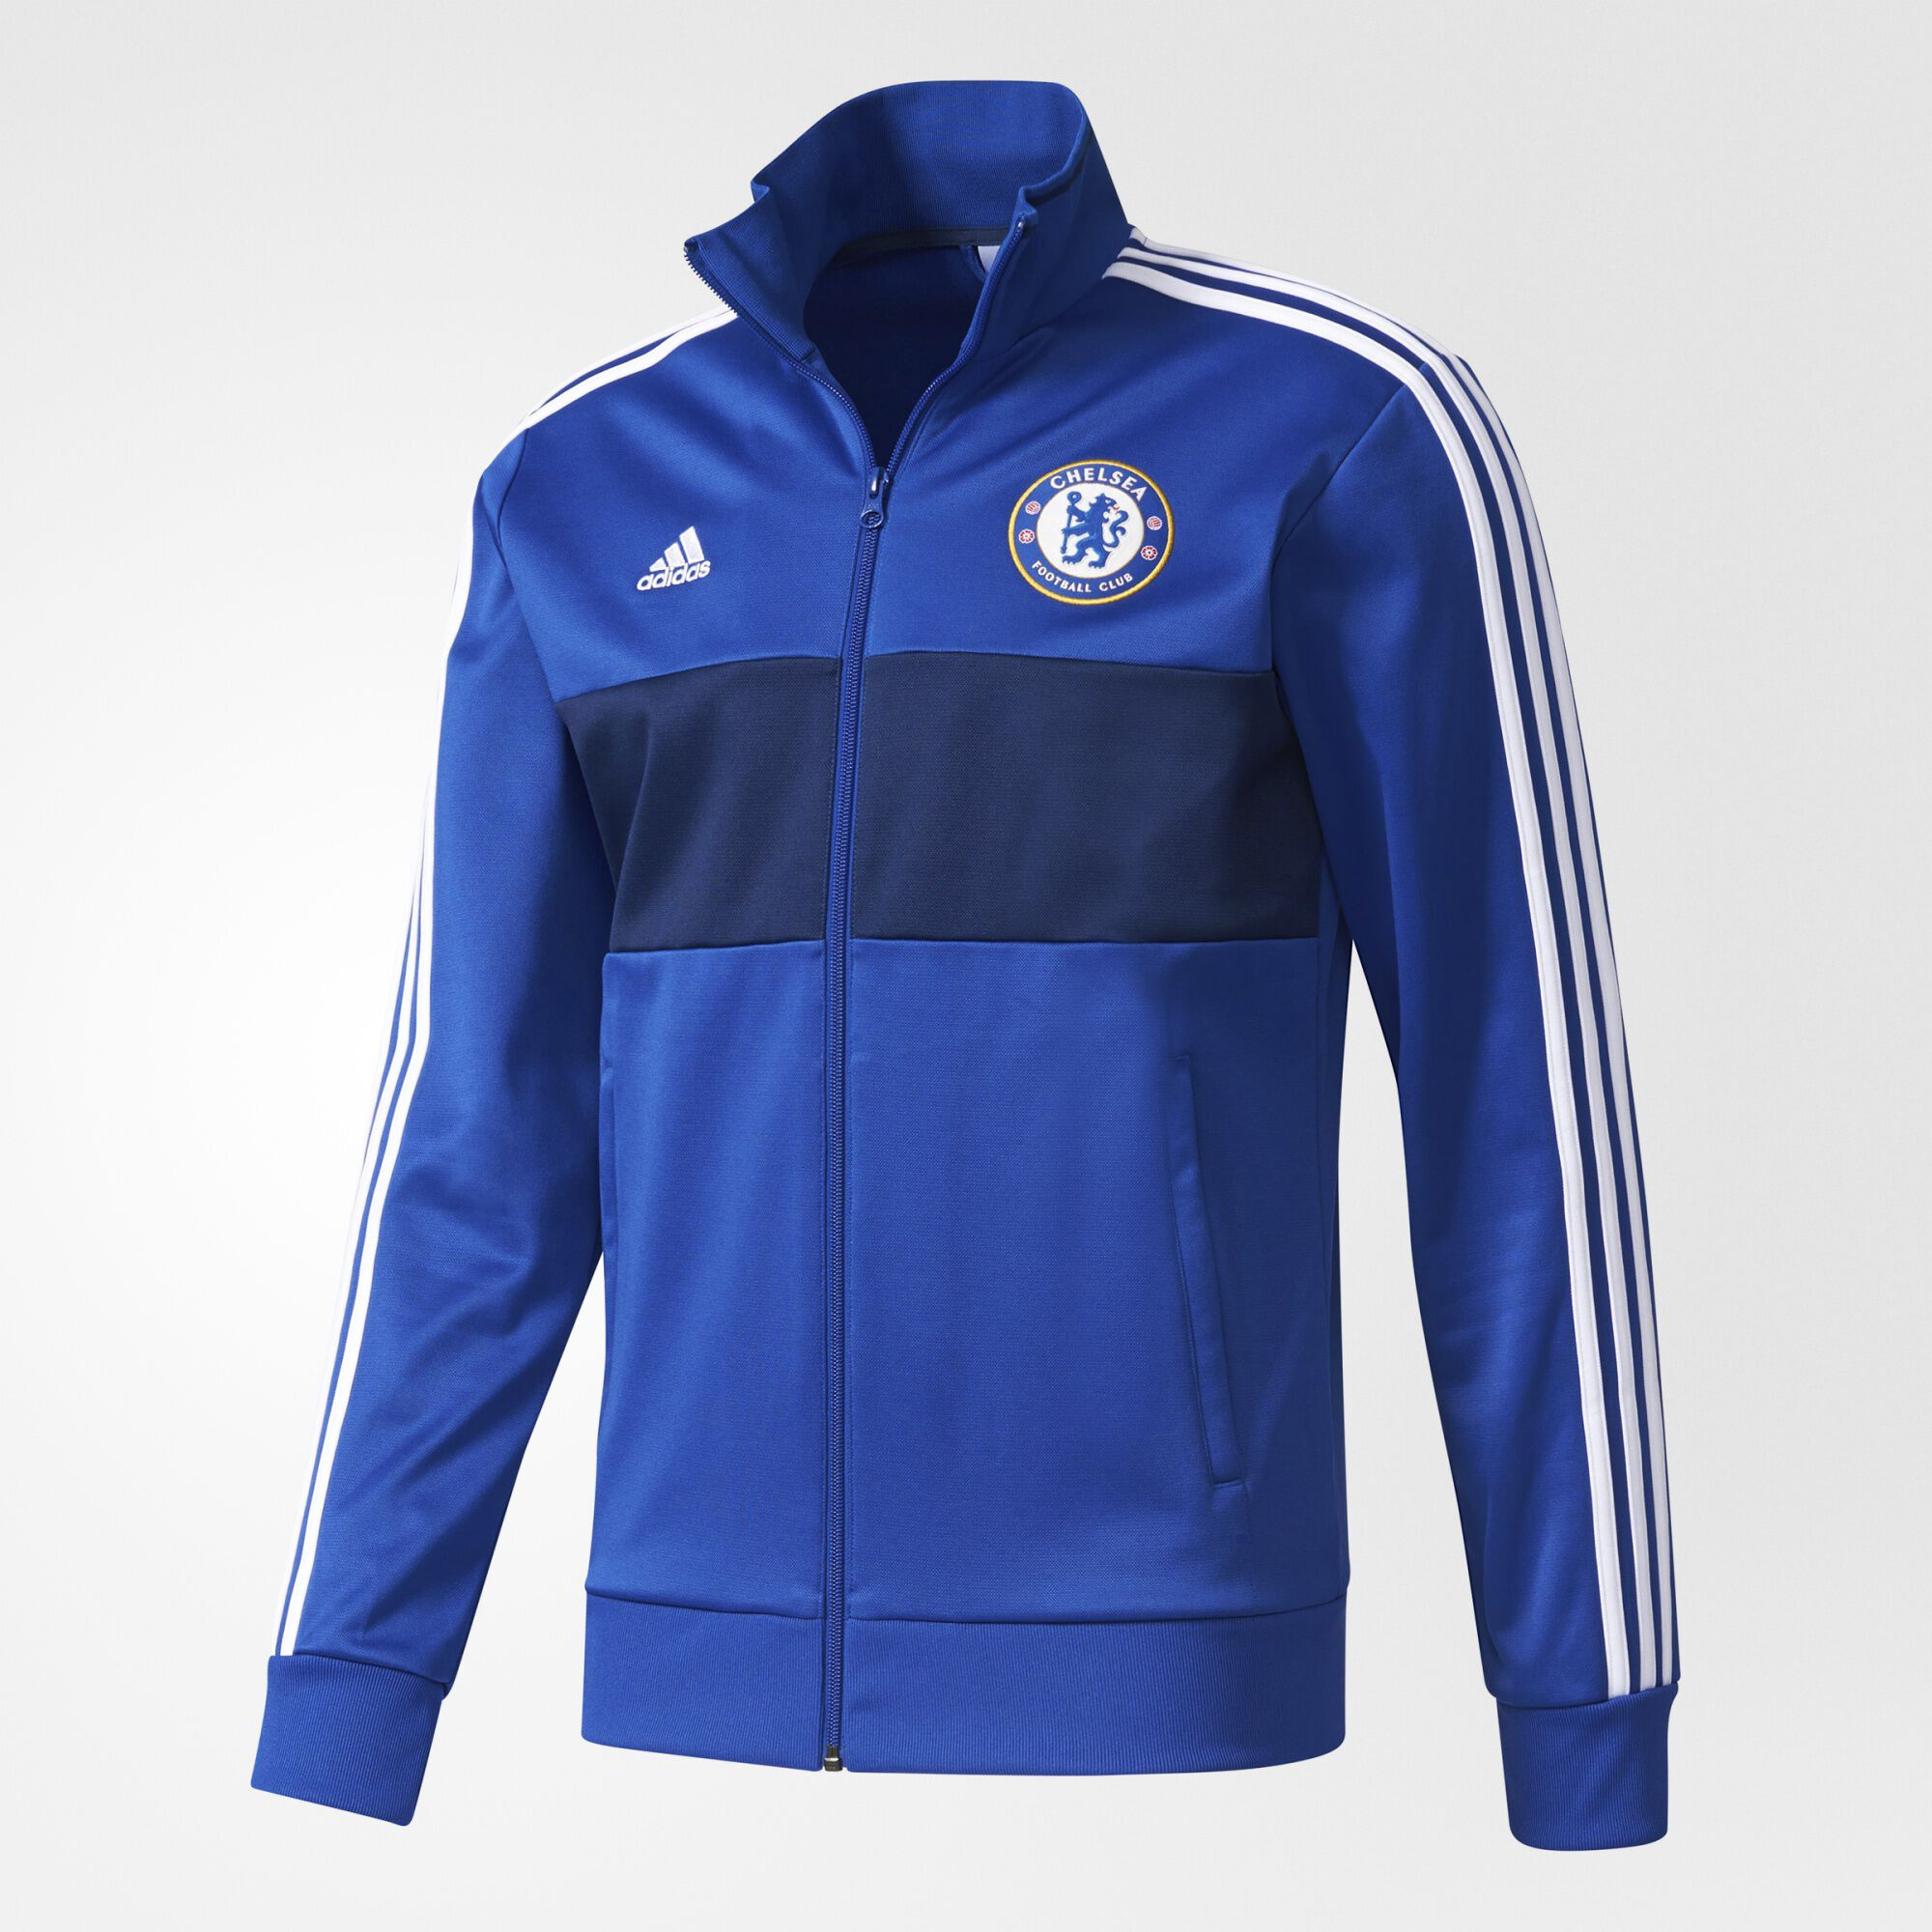 Blue Jackets | adidas US